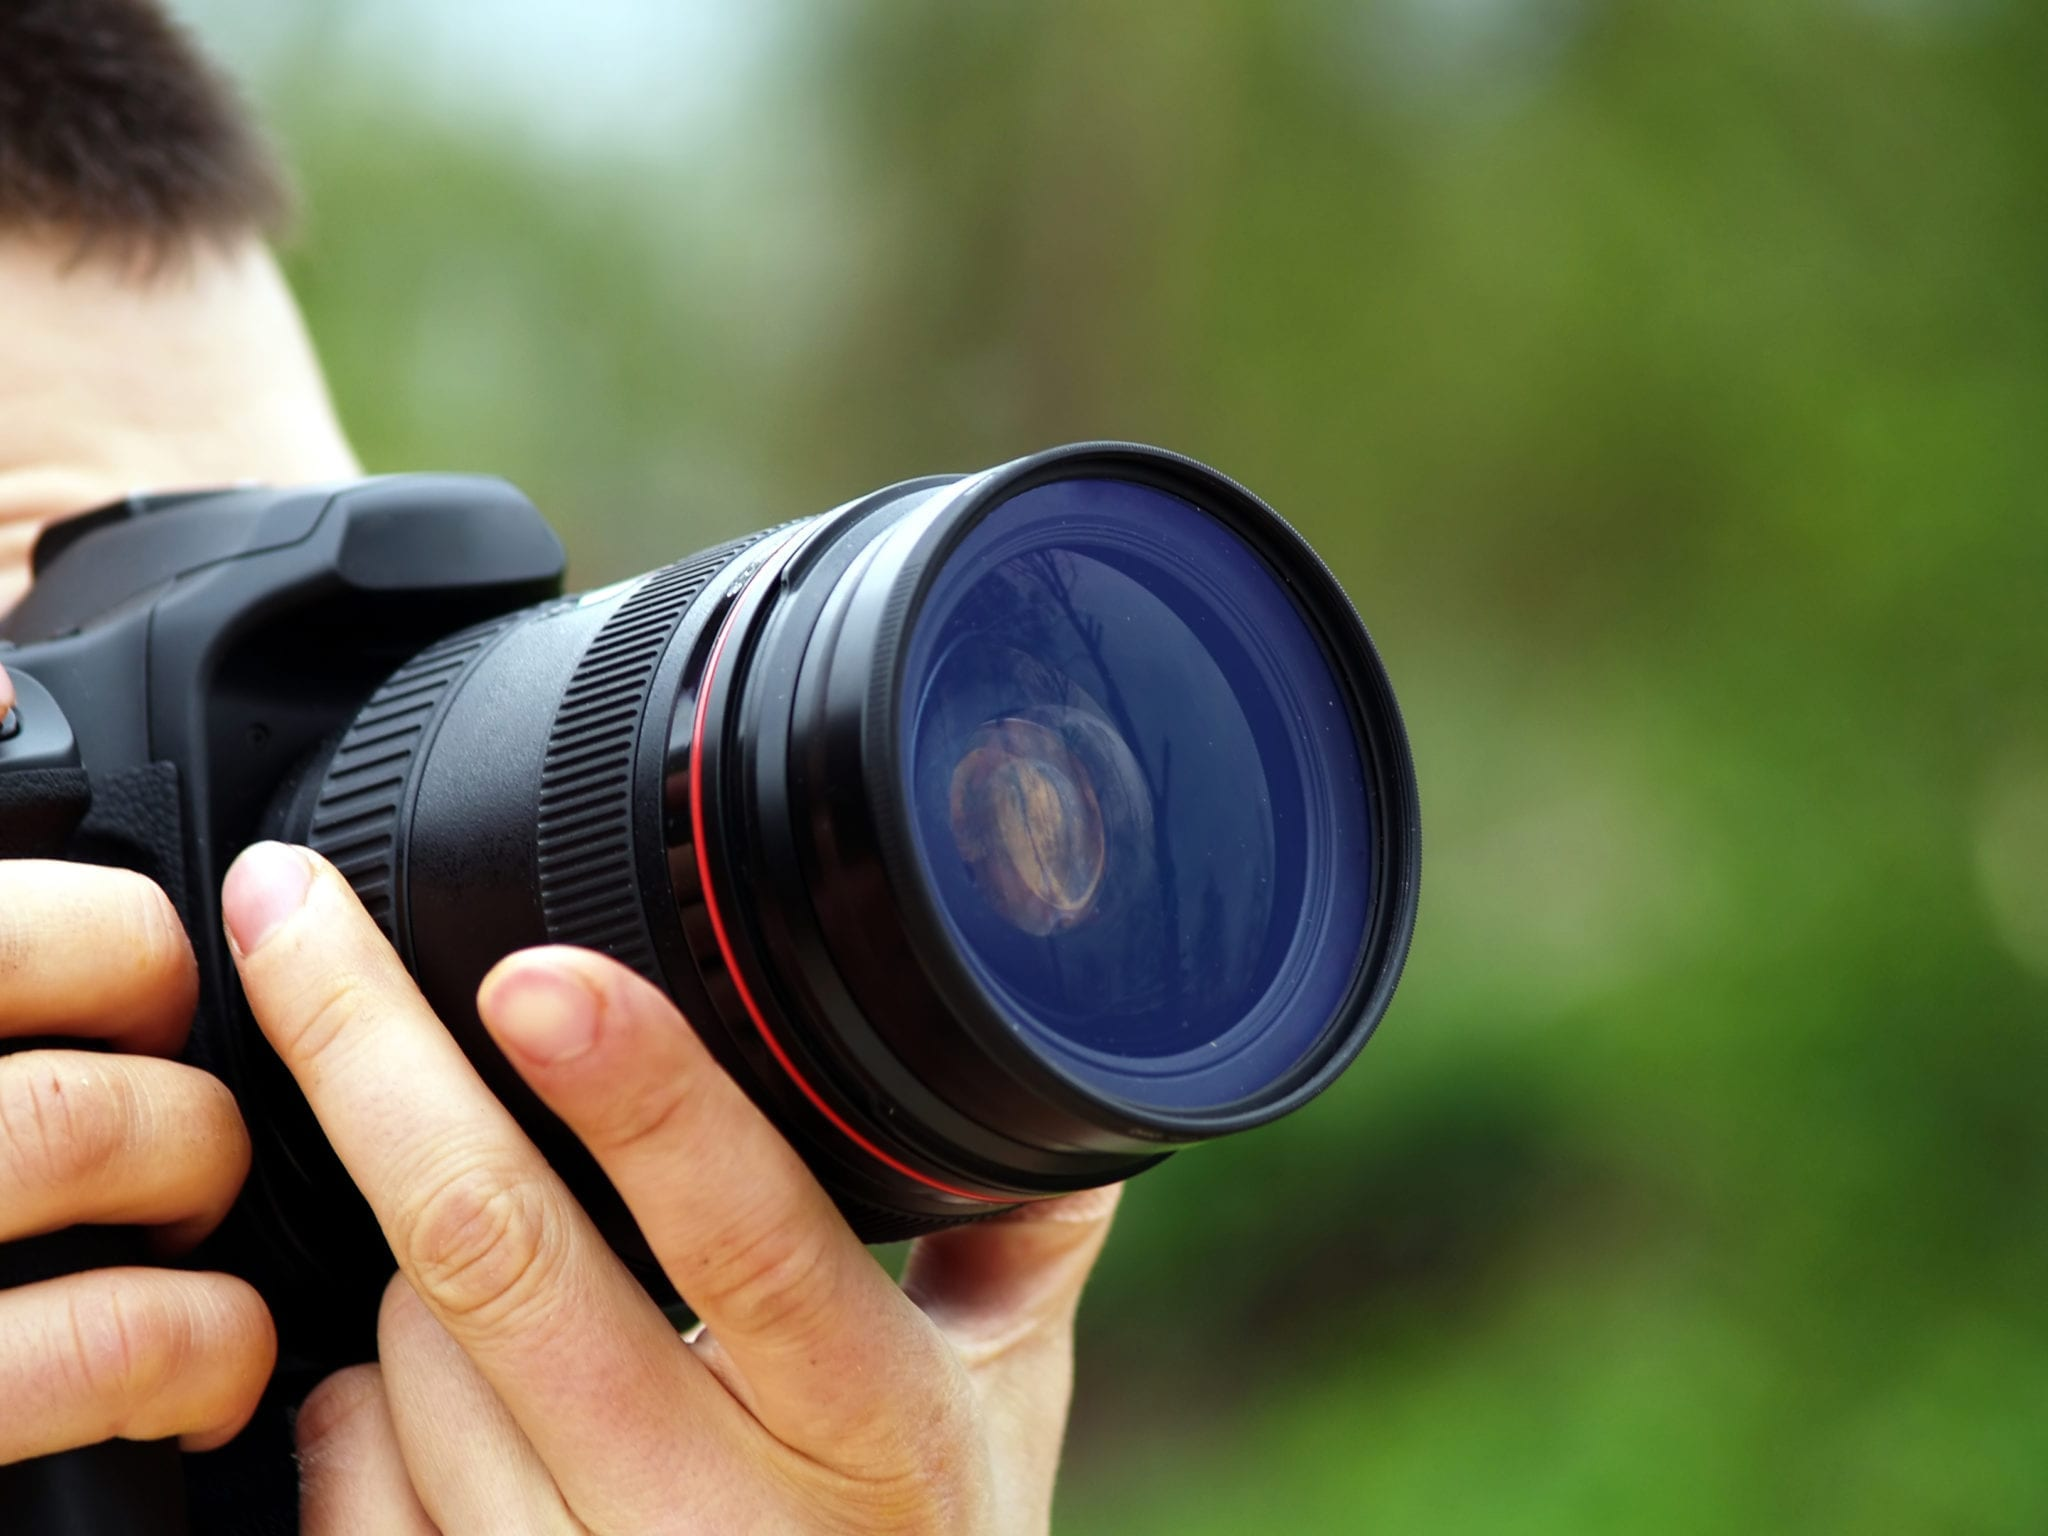 download-our-free-photography-guide-taking-better-product-photos.jpg